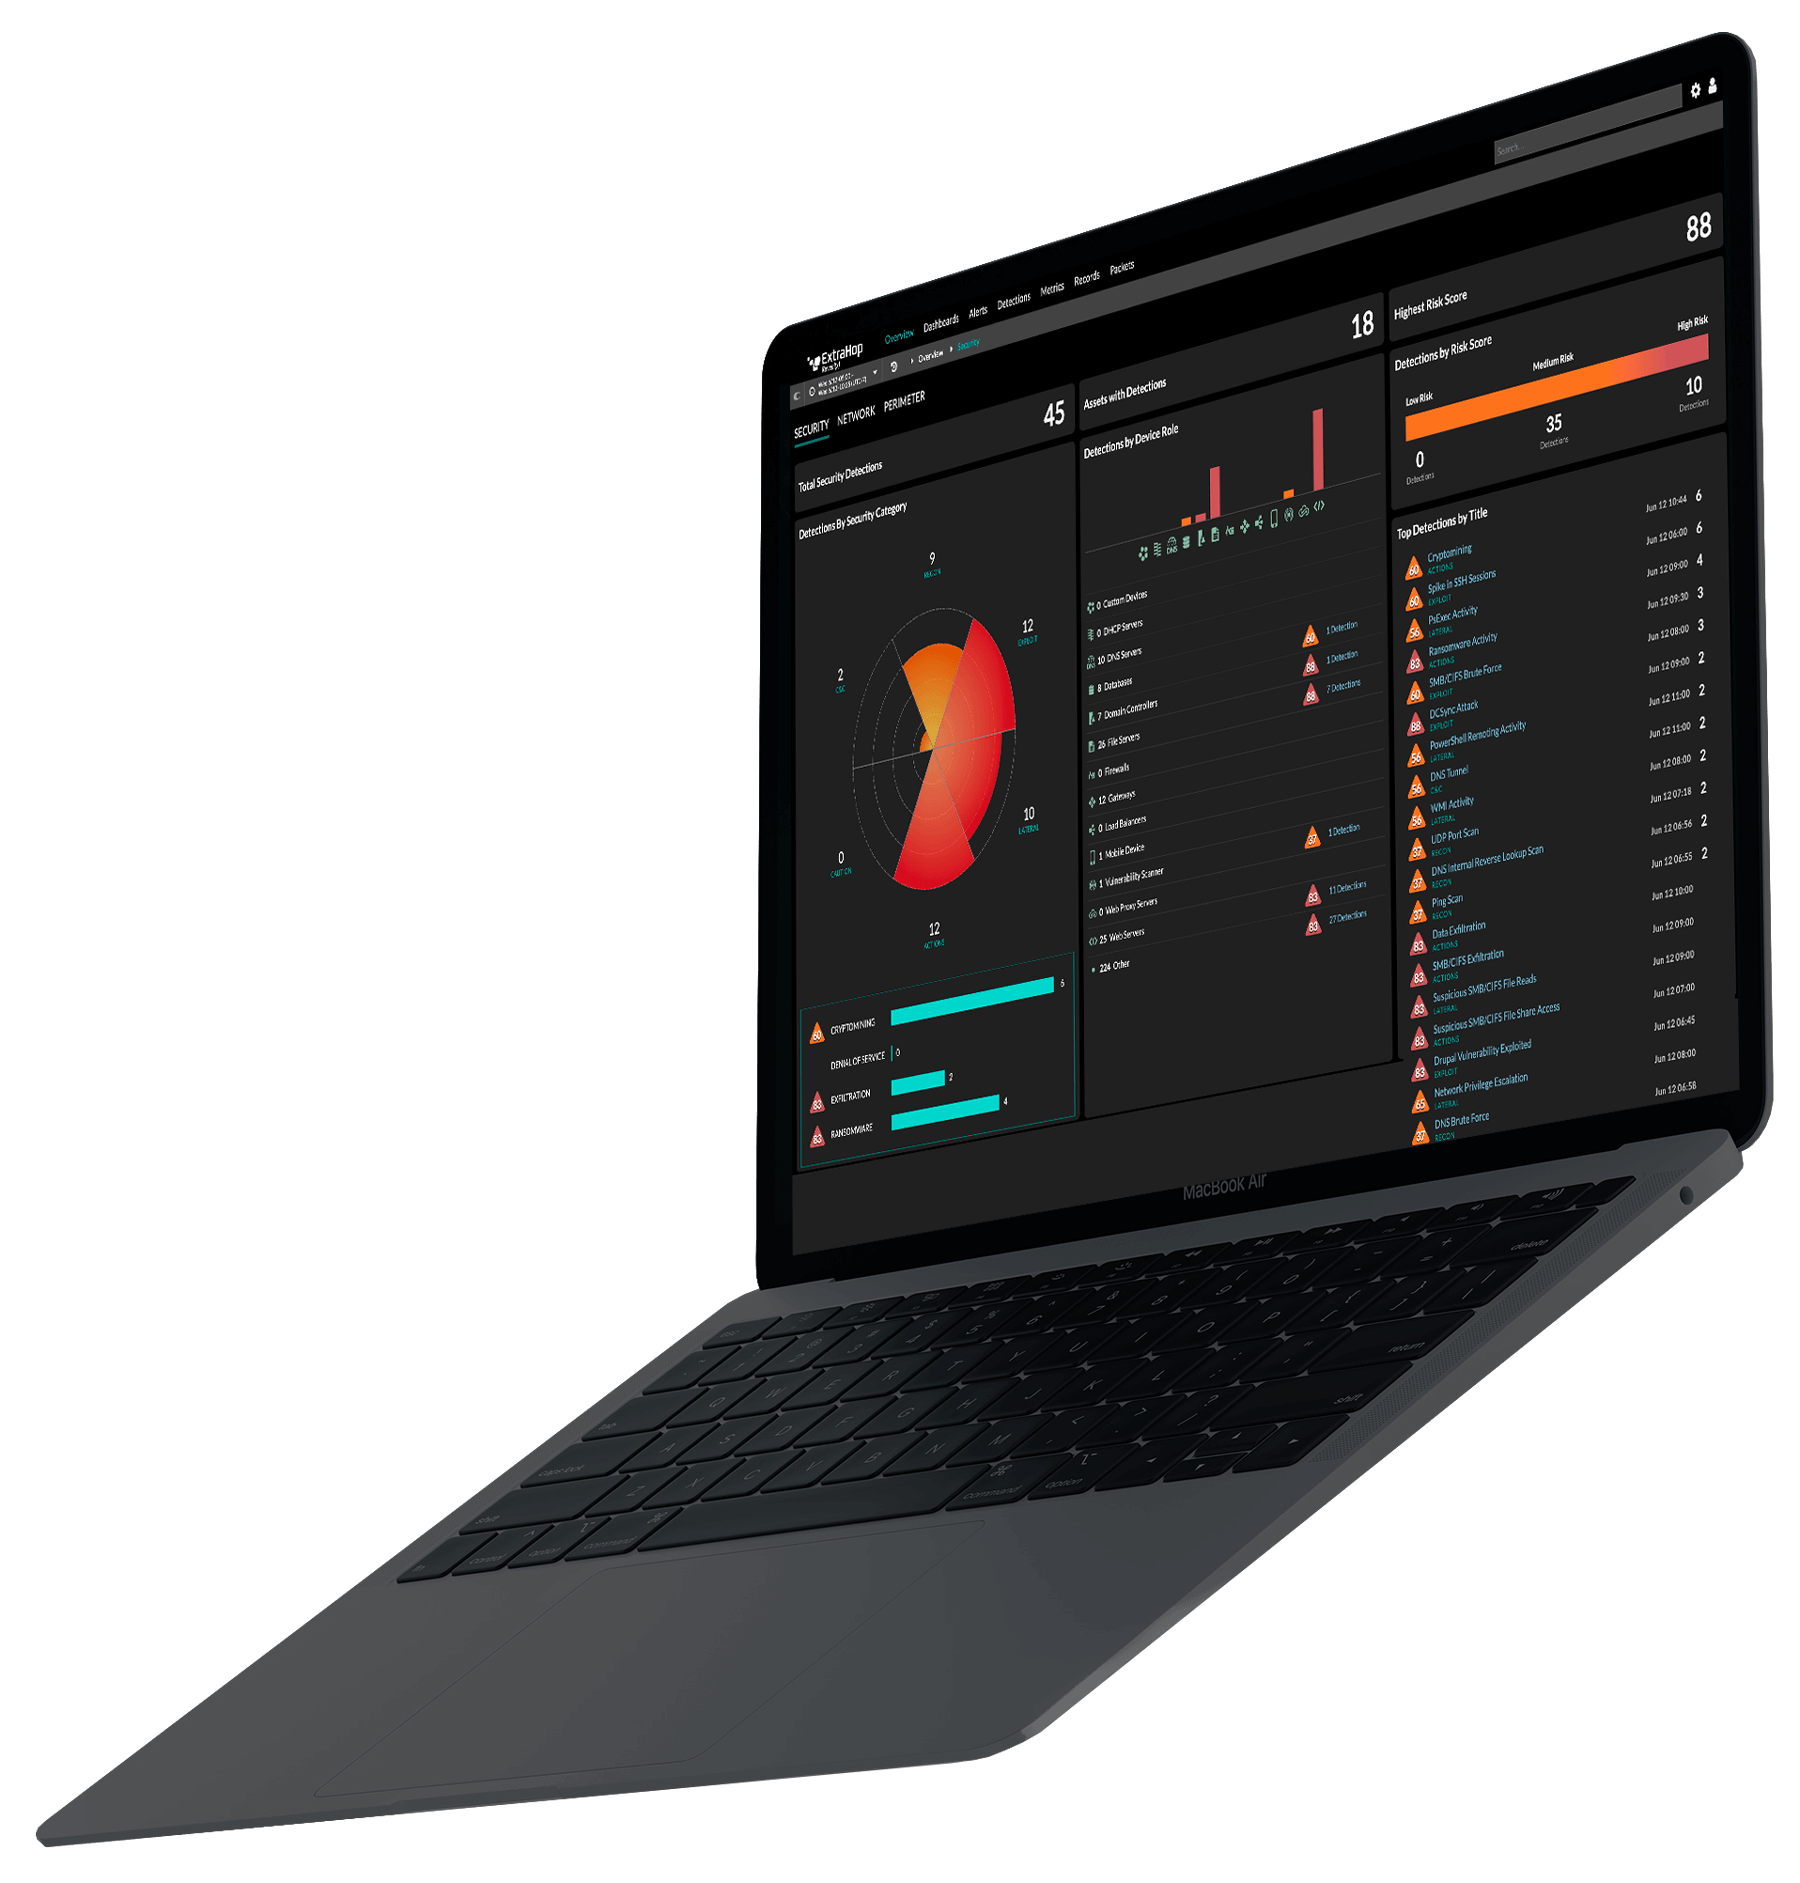 Laptop with Reveal(x) Cloud UI